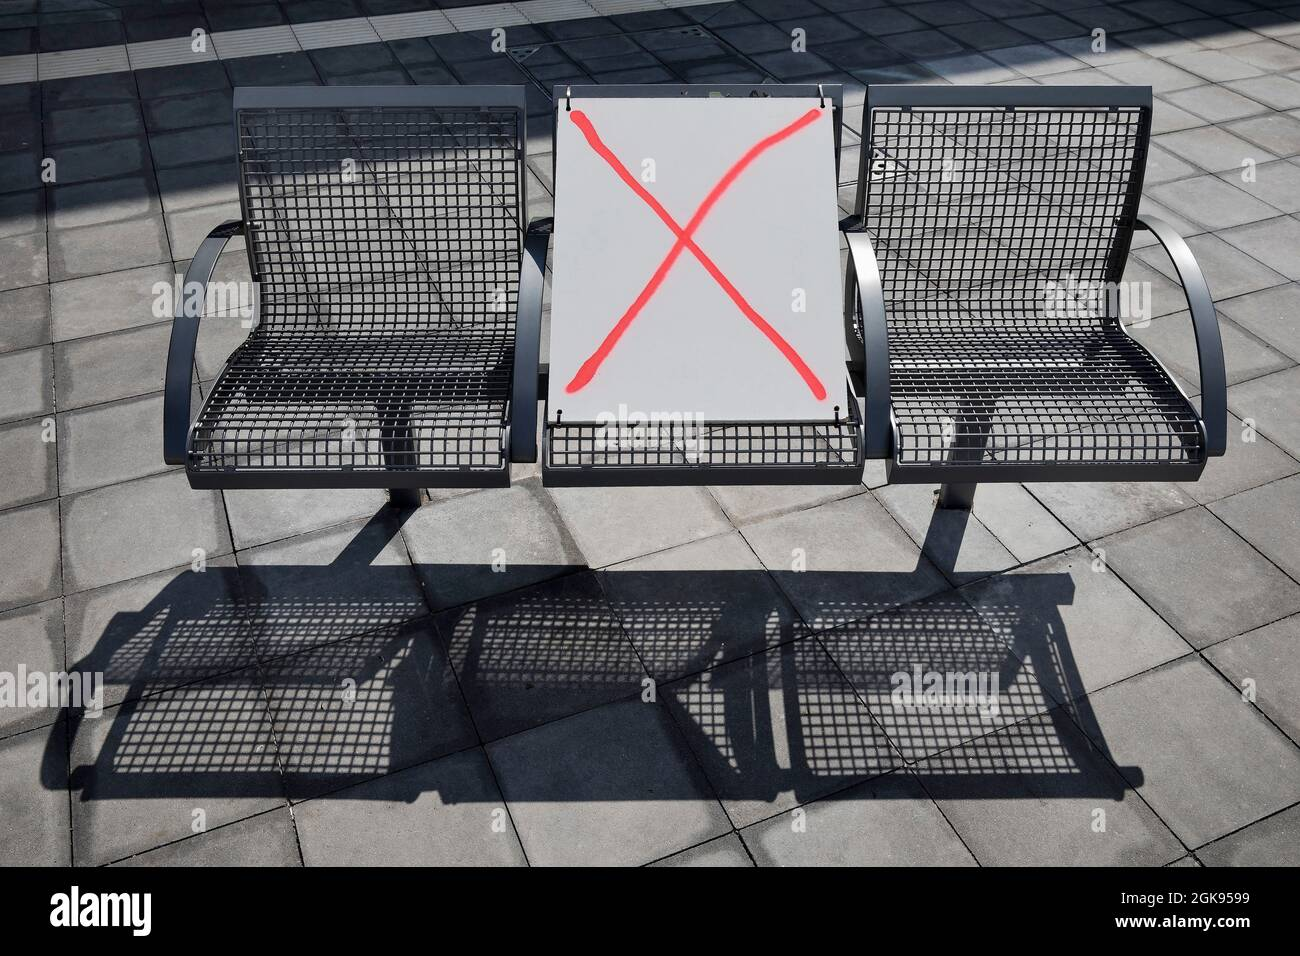 Corona-distancing regulations on a bench in spring 2021, Central bus station, Germany, Berlin Stock Photo